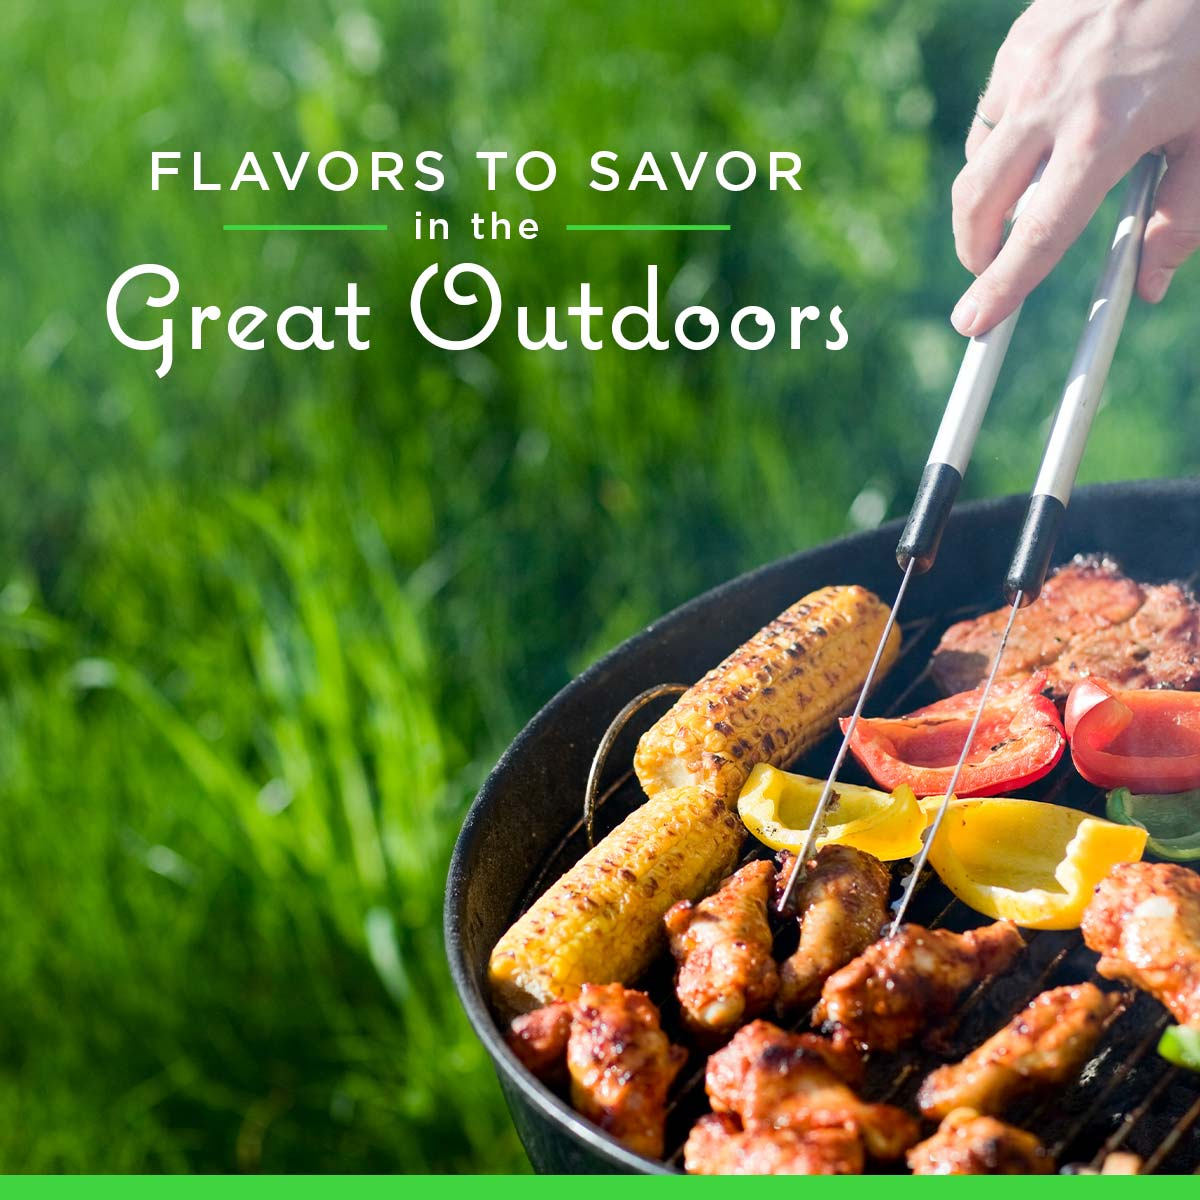 Flavors To Savor In The Great Outdoors